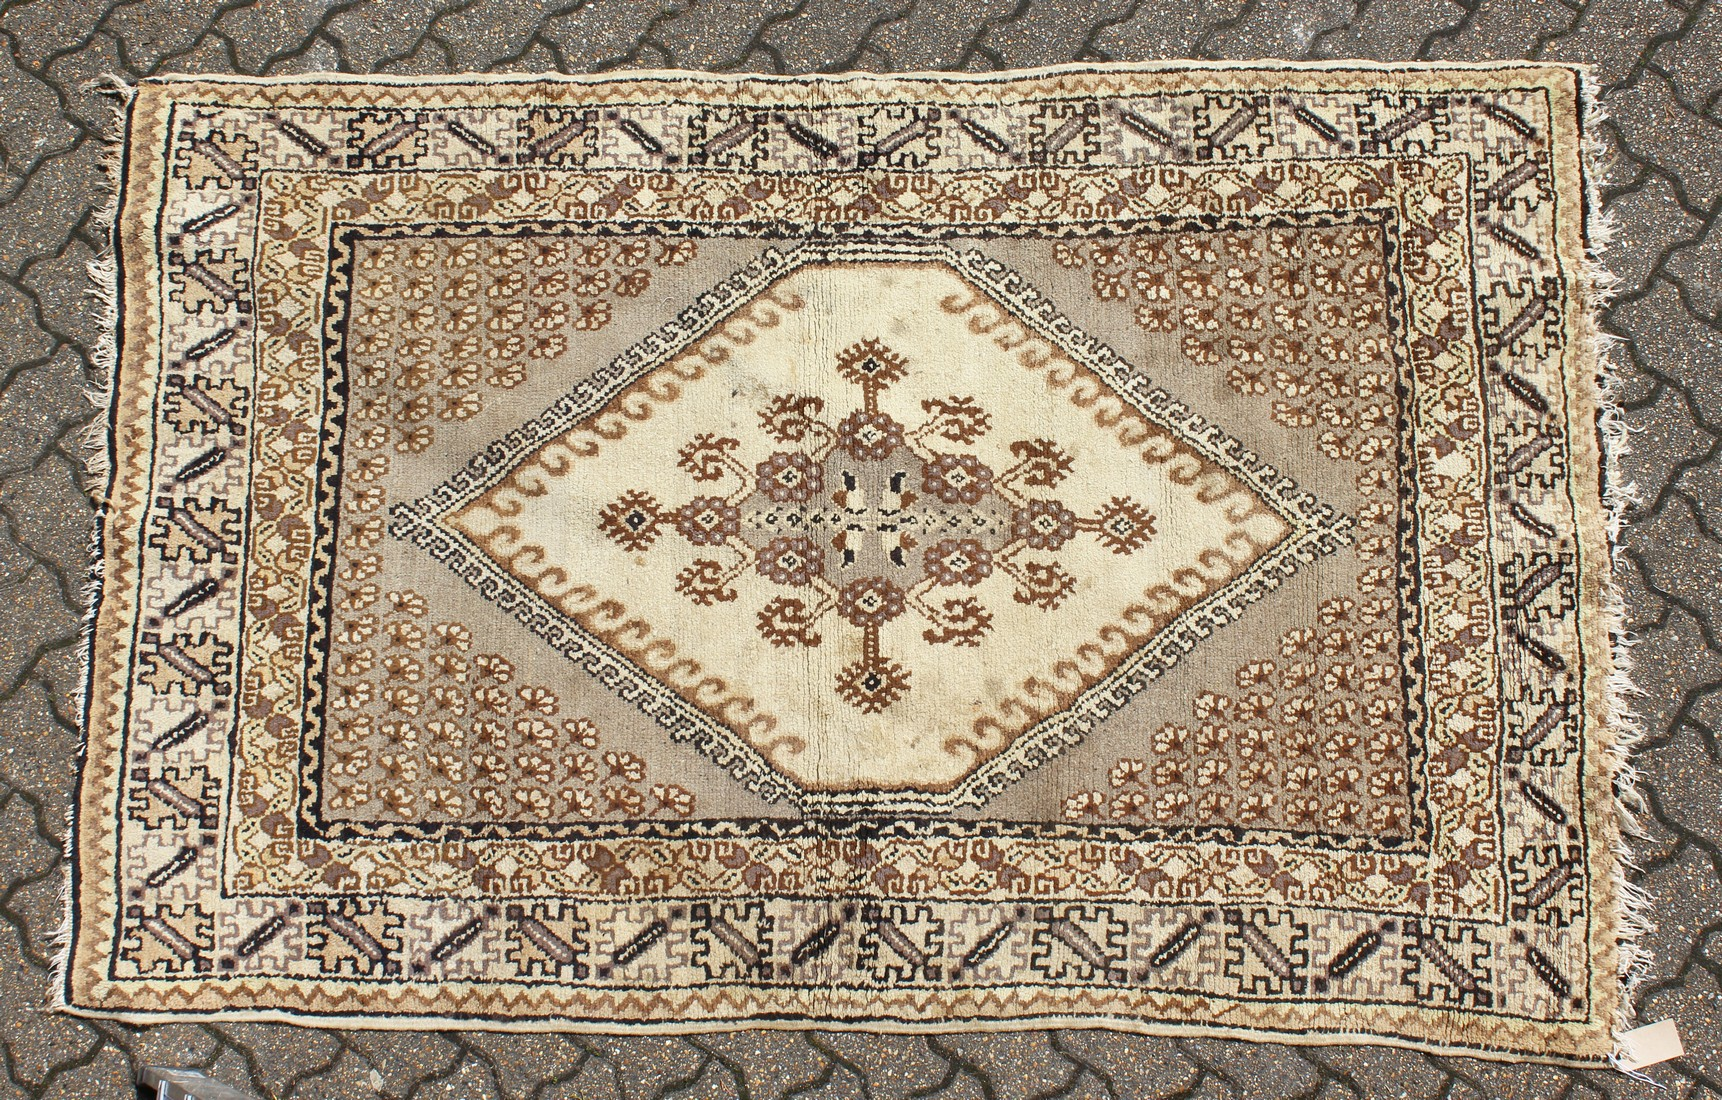 A PERSIAN RUG brown and cream with large medallions. 6ft 6ins long x 4ft 6ins wide